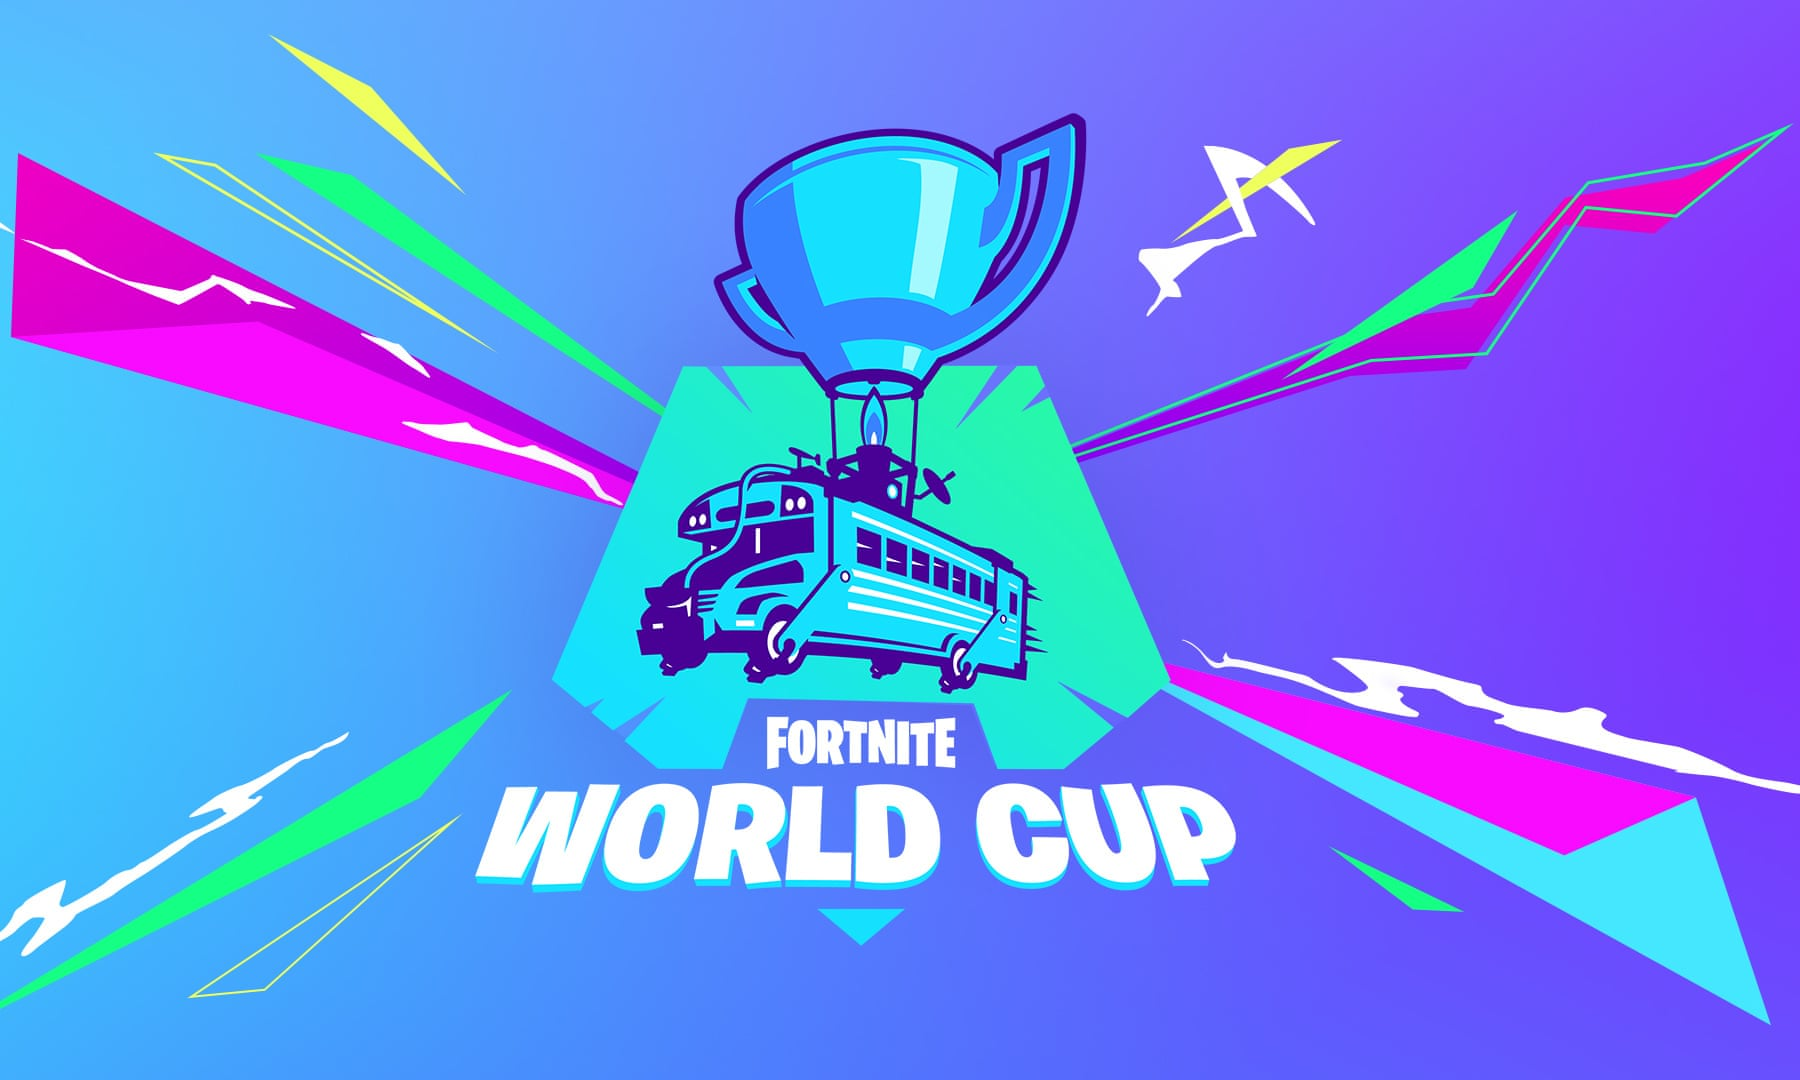 Fortnite World Cup details announced with $30 million prize pool